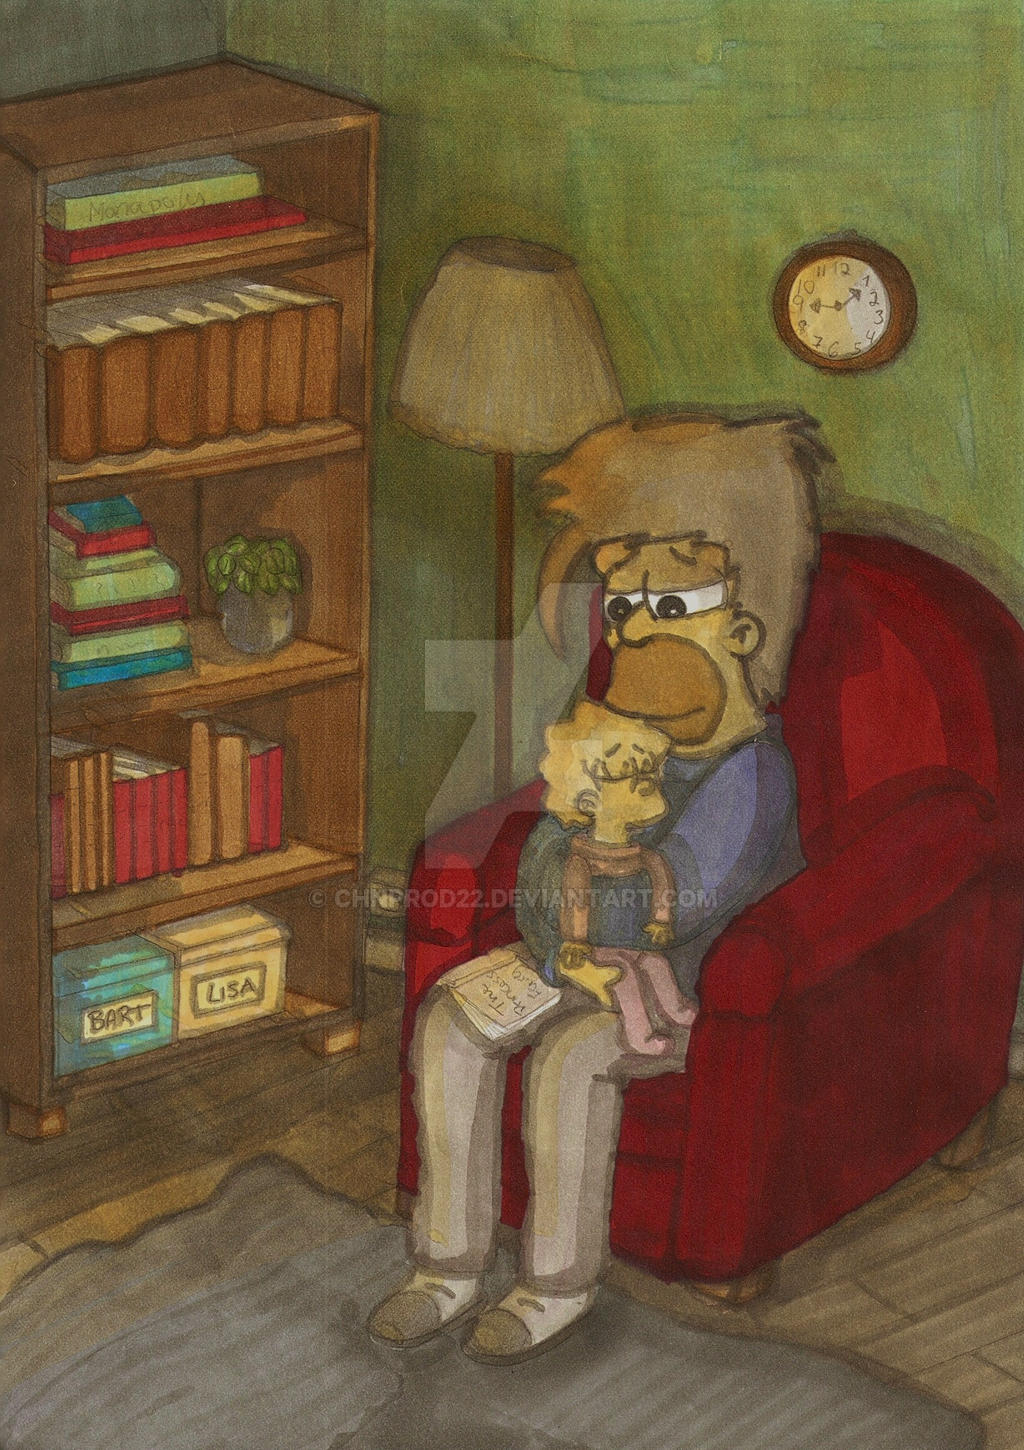 Homer And Lisa - Bedtimestory by ChnProd22